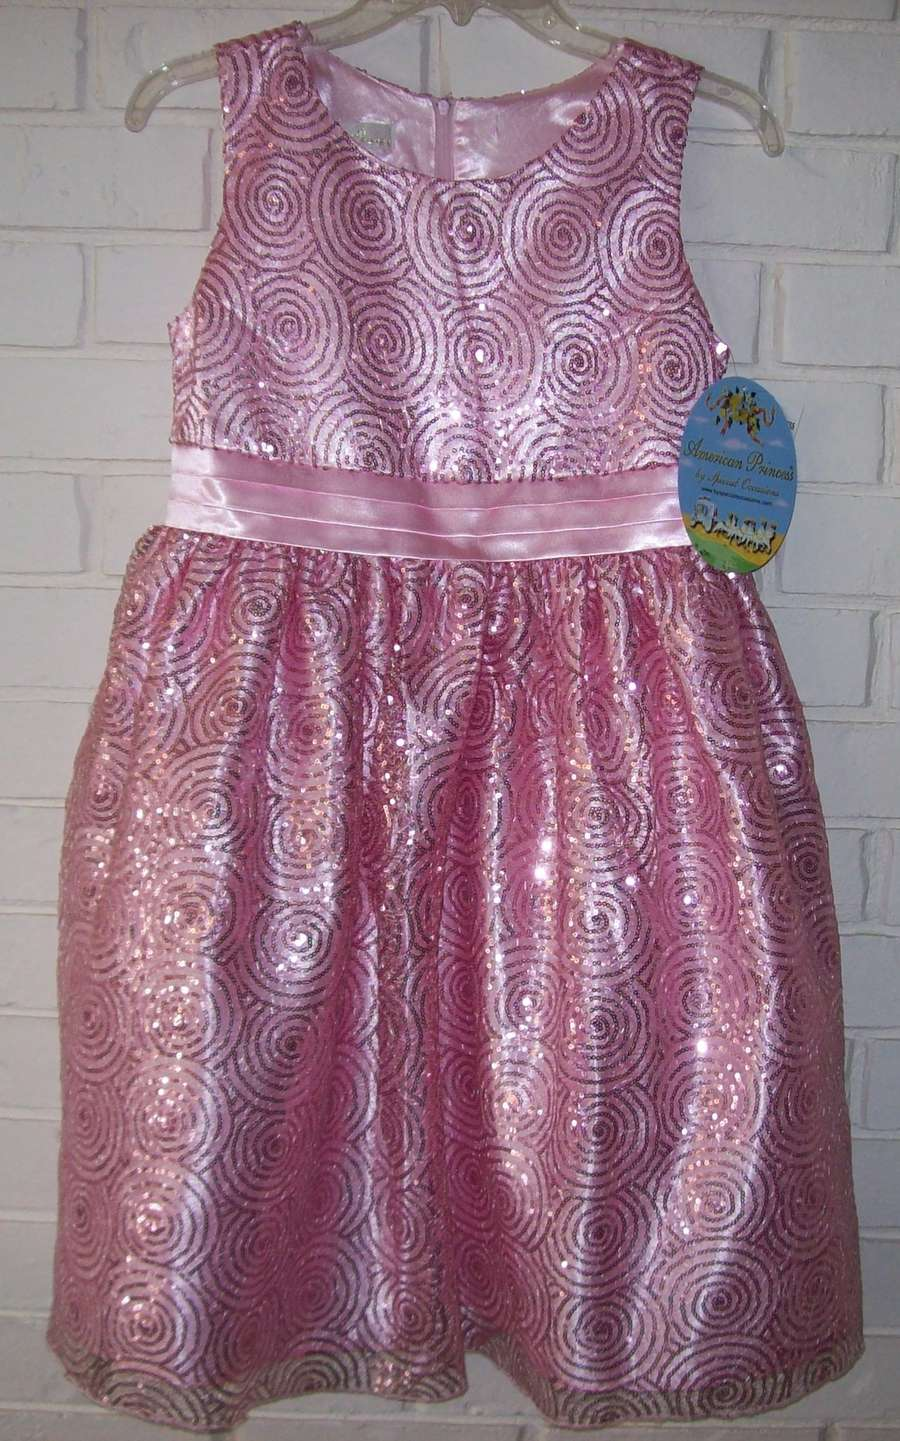 Details about American Princess Ice Pink Girl Plus Size 14.5 Sequin Party  Dress NEW GORGEOUS!!